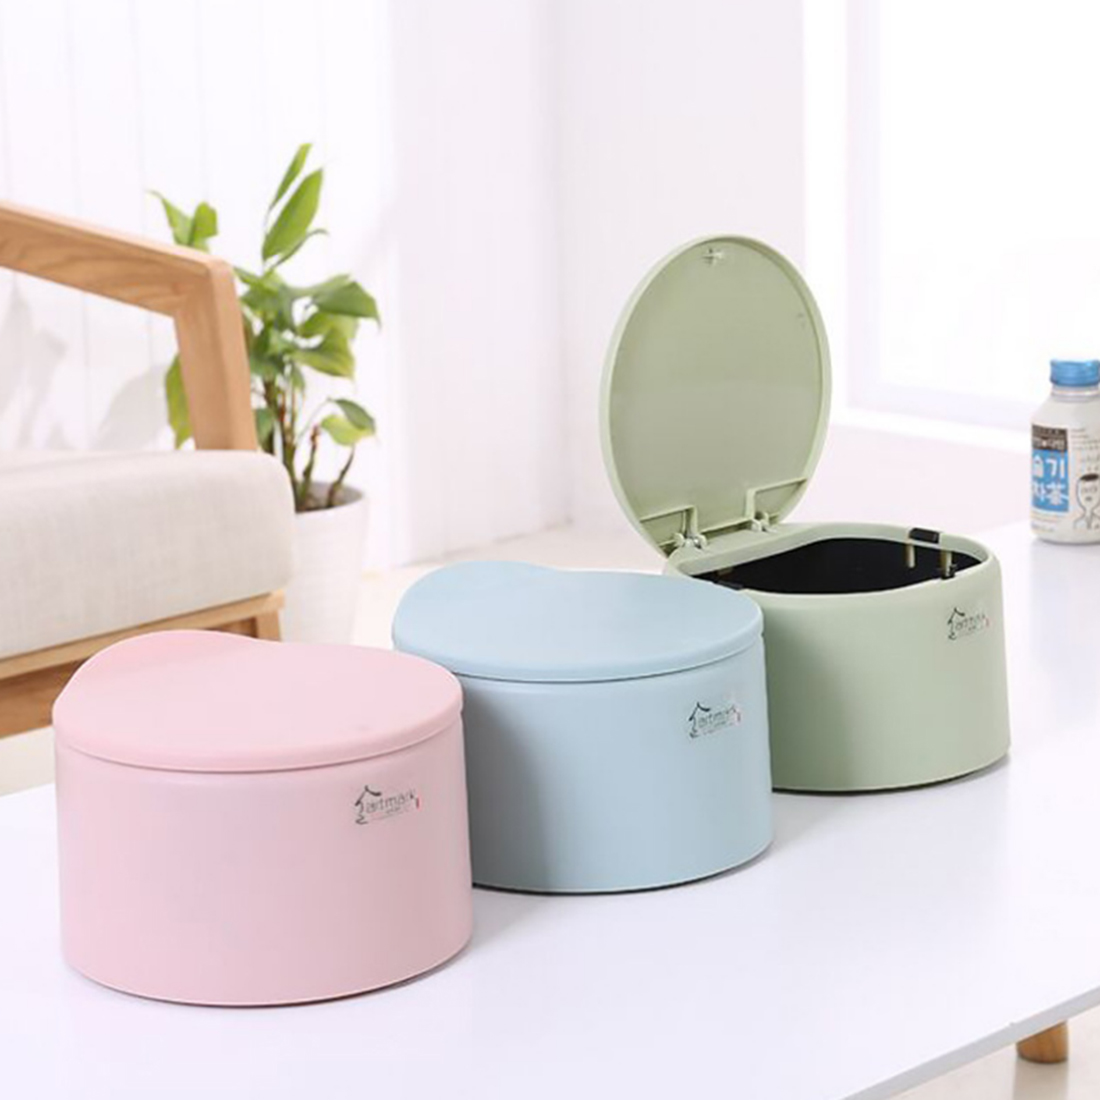 HIPSTEEN Delicate Mini Tabletop Trash Can Plastic Waste Bins Durable Garbage  Can With Snap Cover(